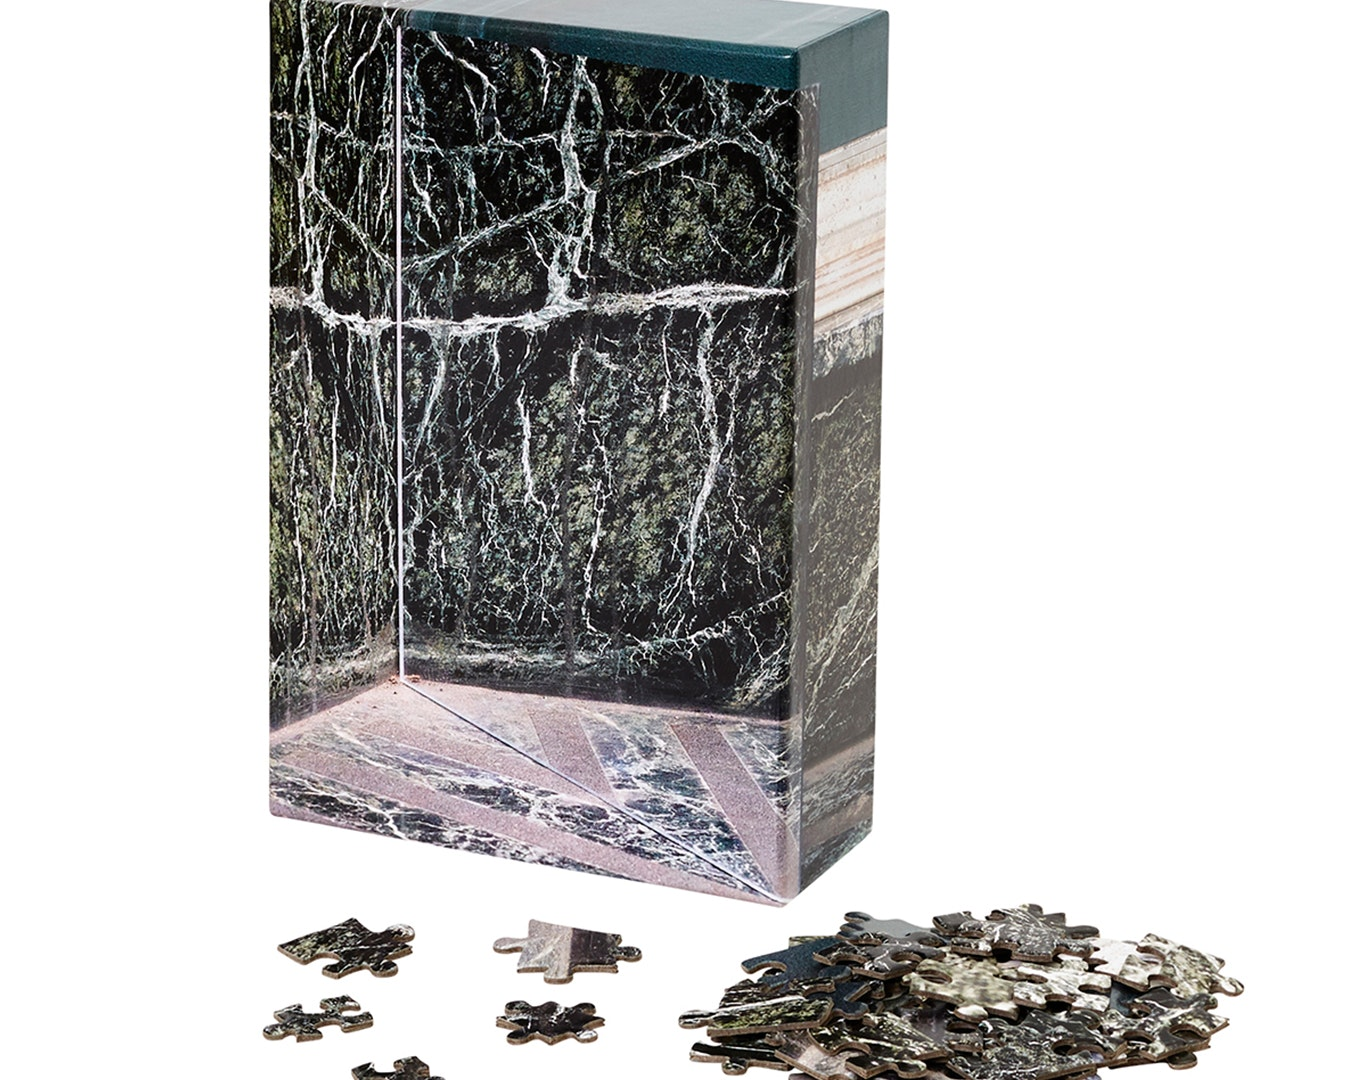 Puzzle box featuring grey, marble pattern. In front of it are a few single puzzle pieces.